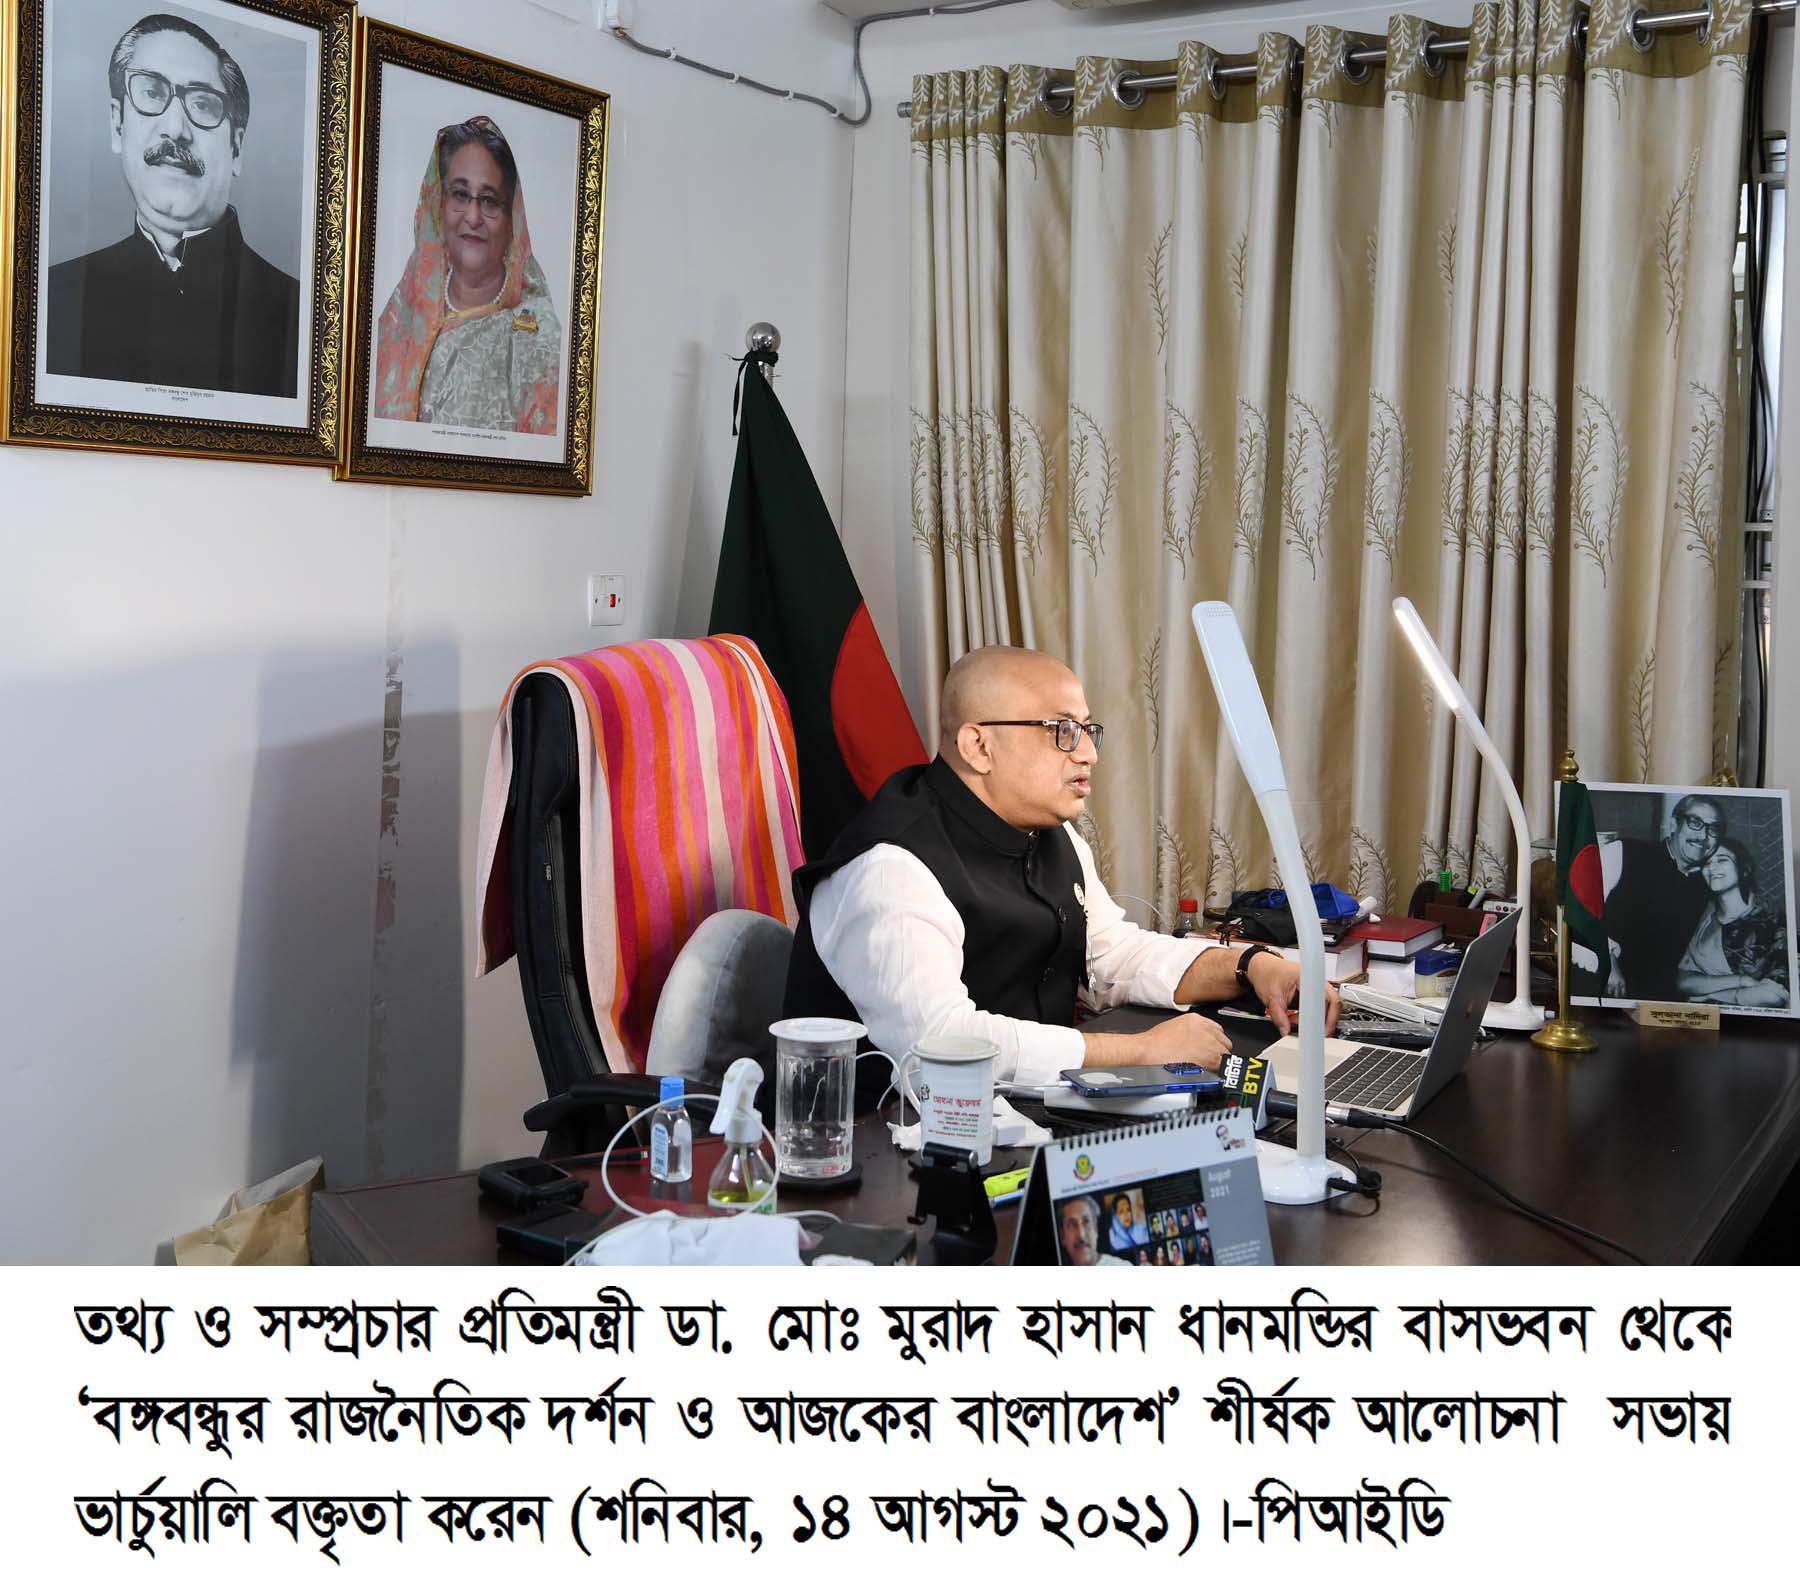 Bangladesh observes day of mourning